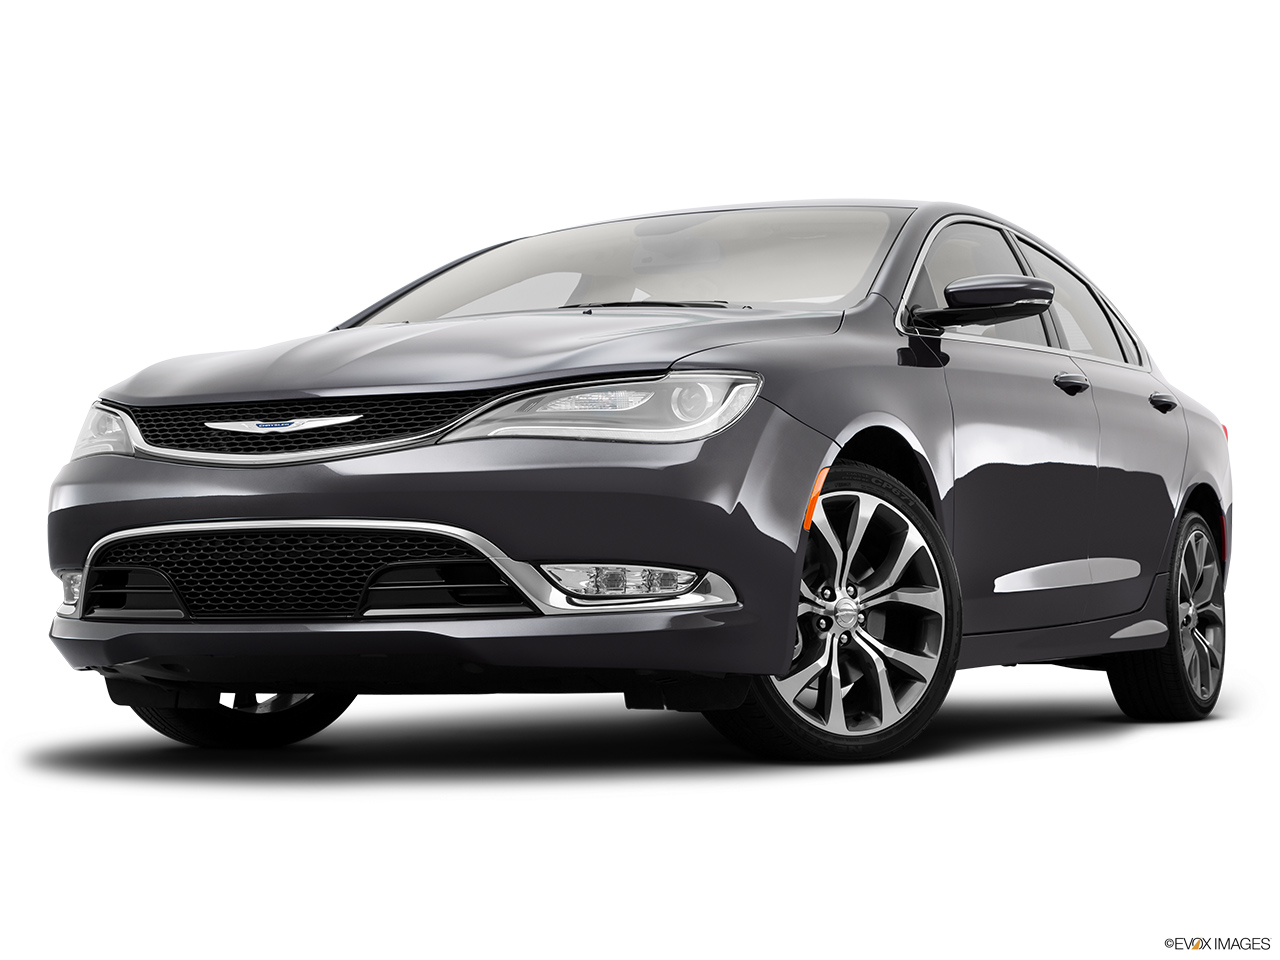 c gallery share and best chrysler download image